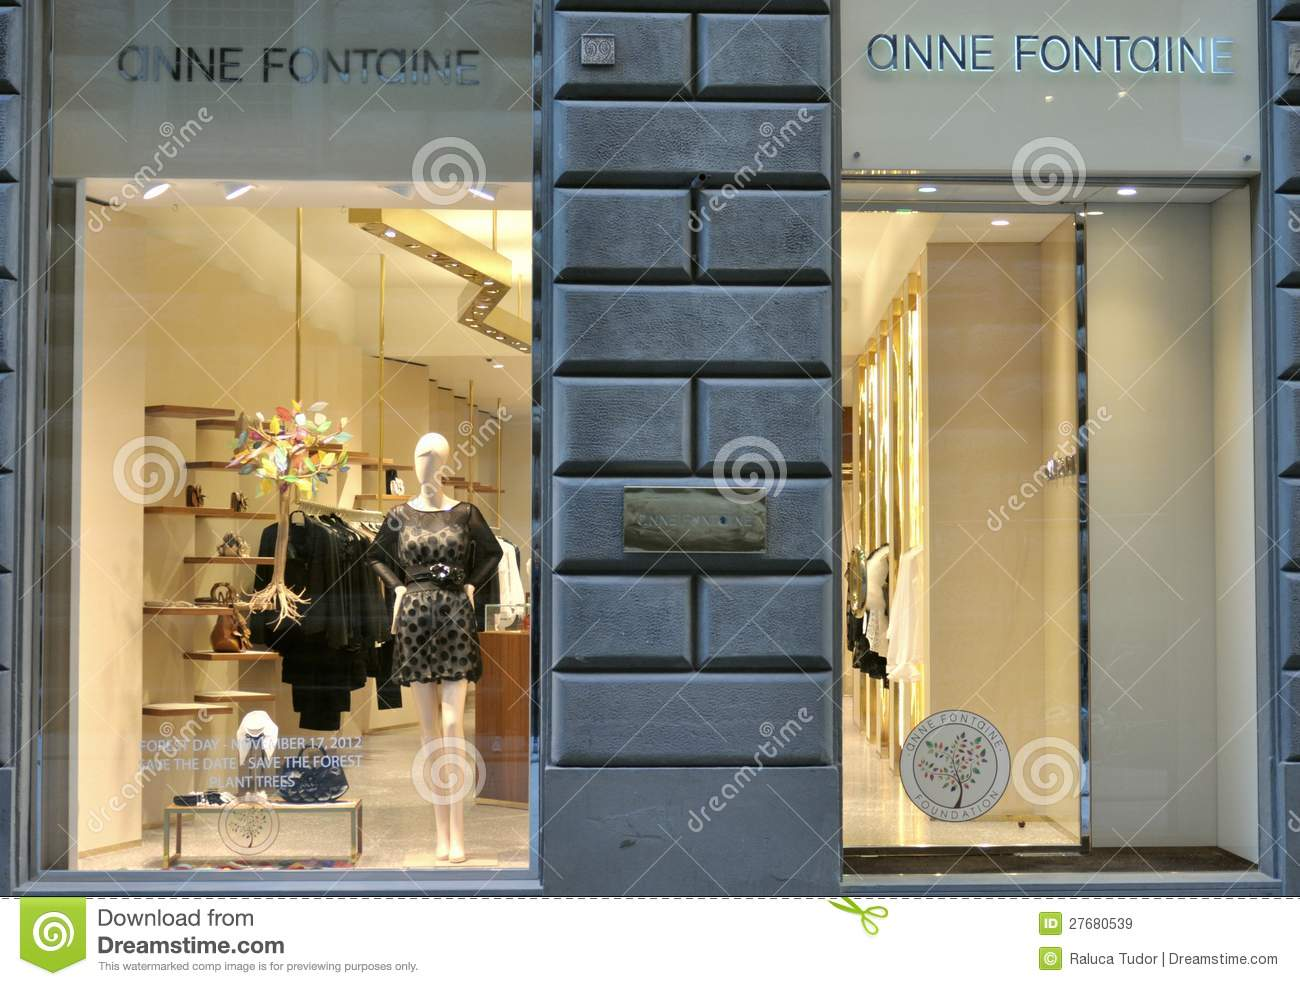 Editorial Stock Image: Anne Fontaine luxury fashion store in Italy